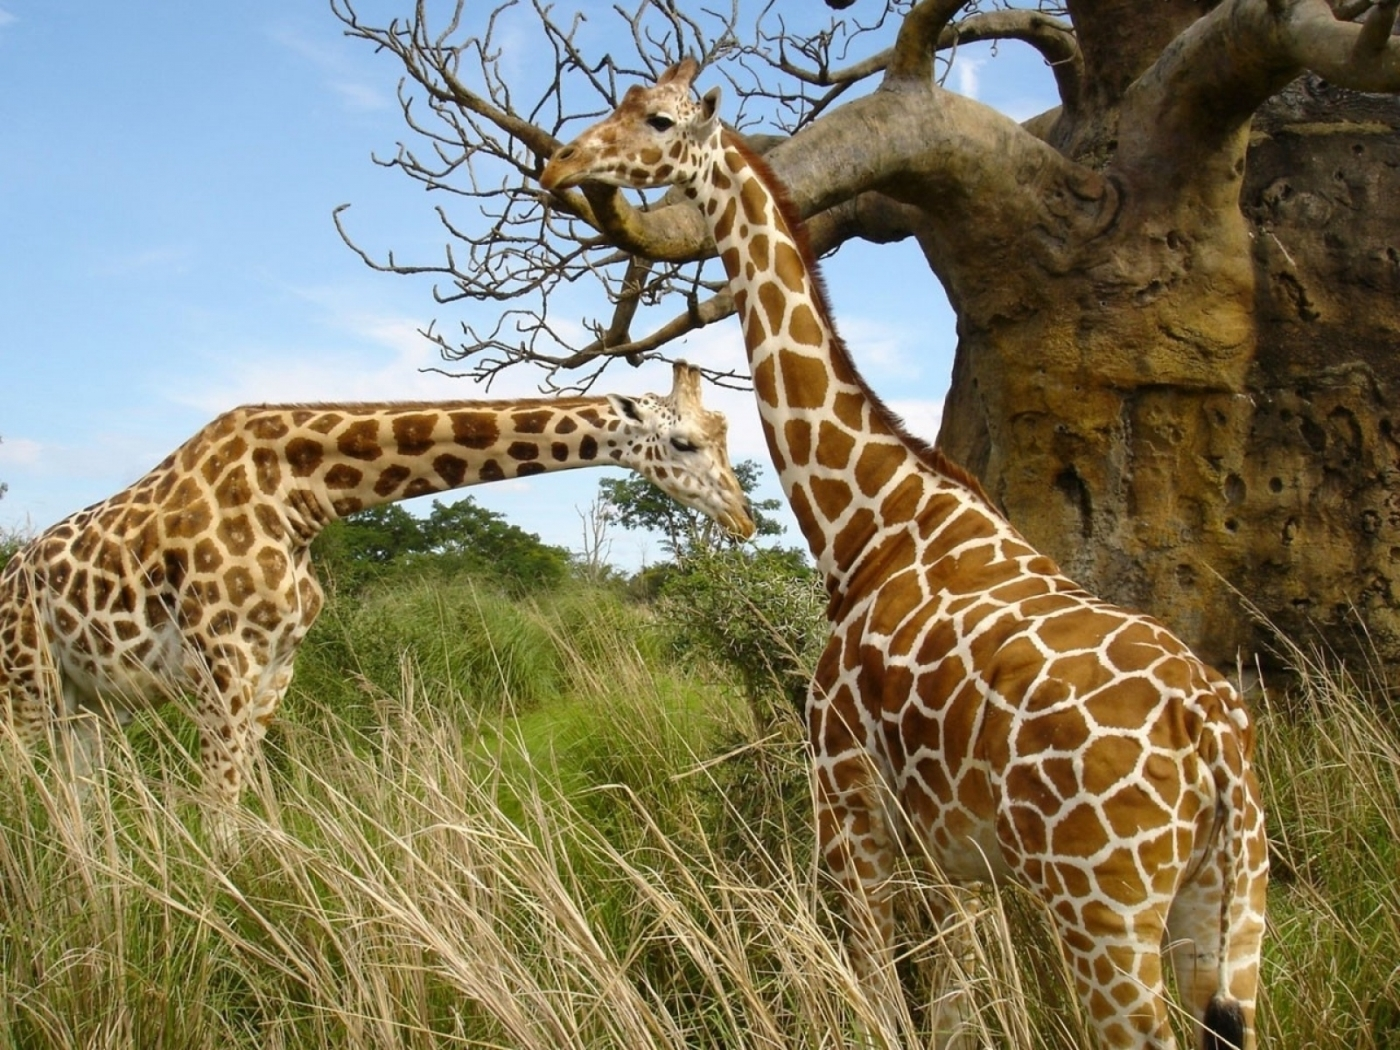 47170 download wallpaper Animals, Giraffes screensavers and pictures for free